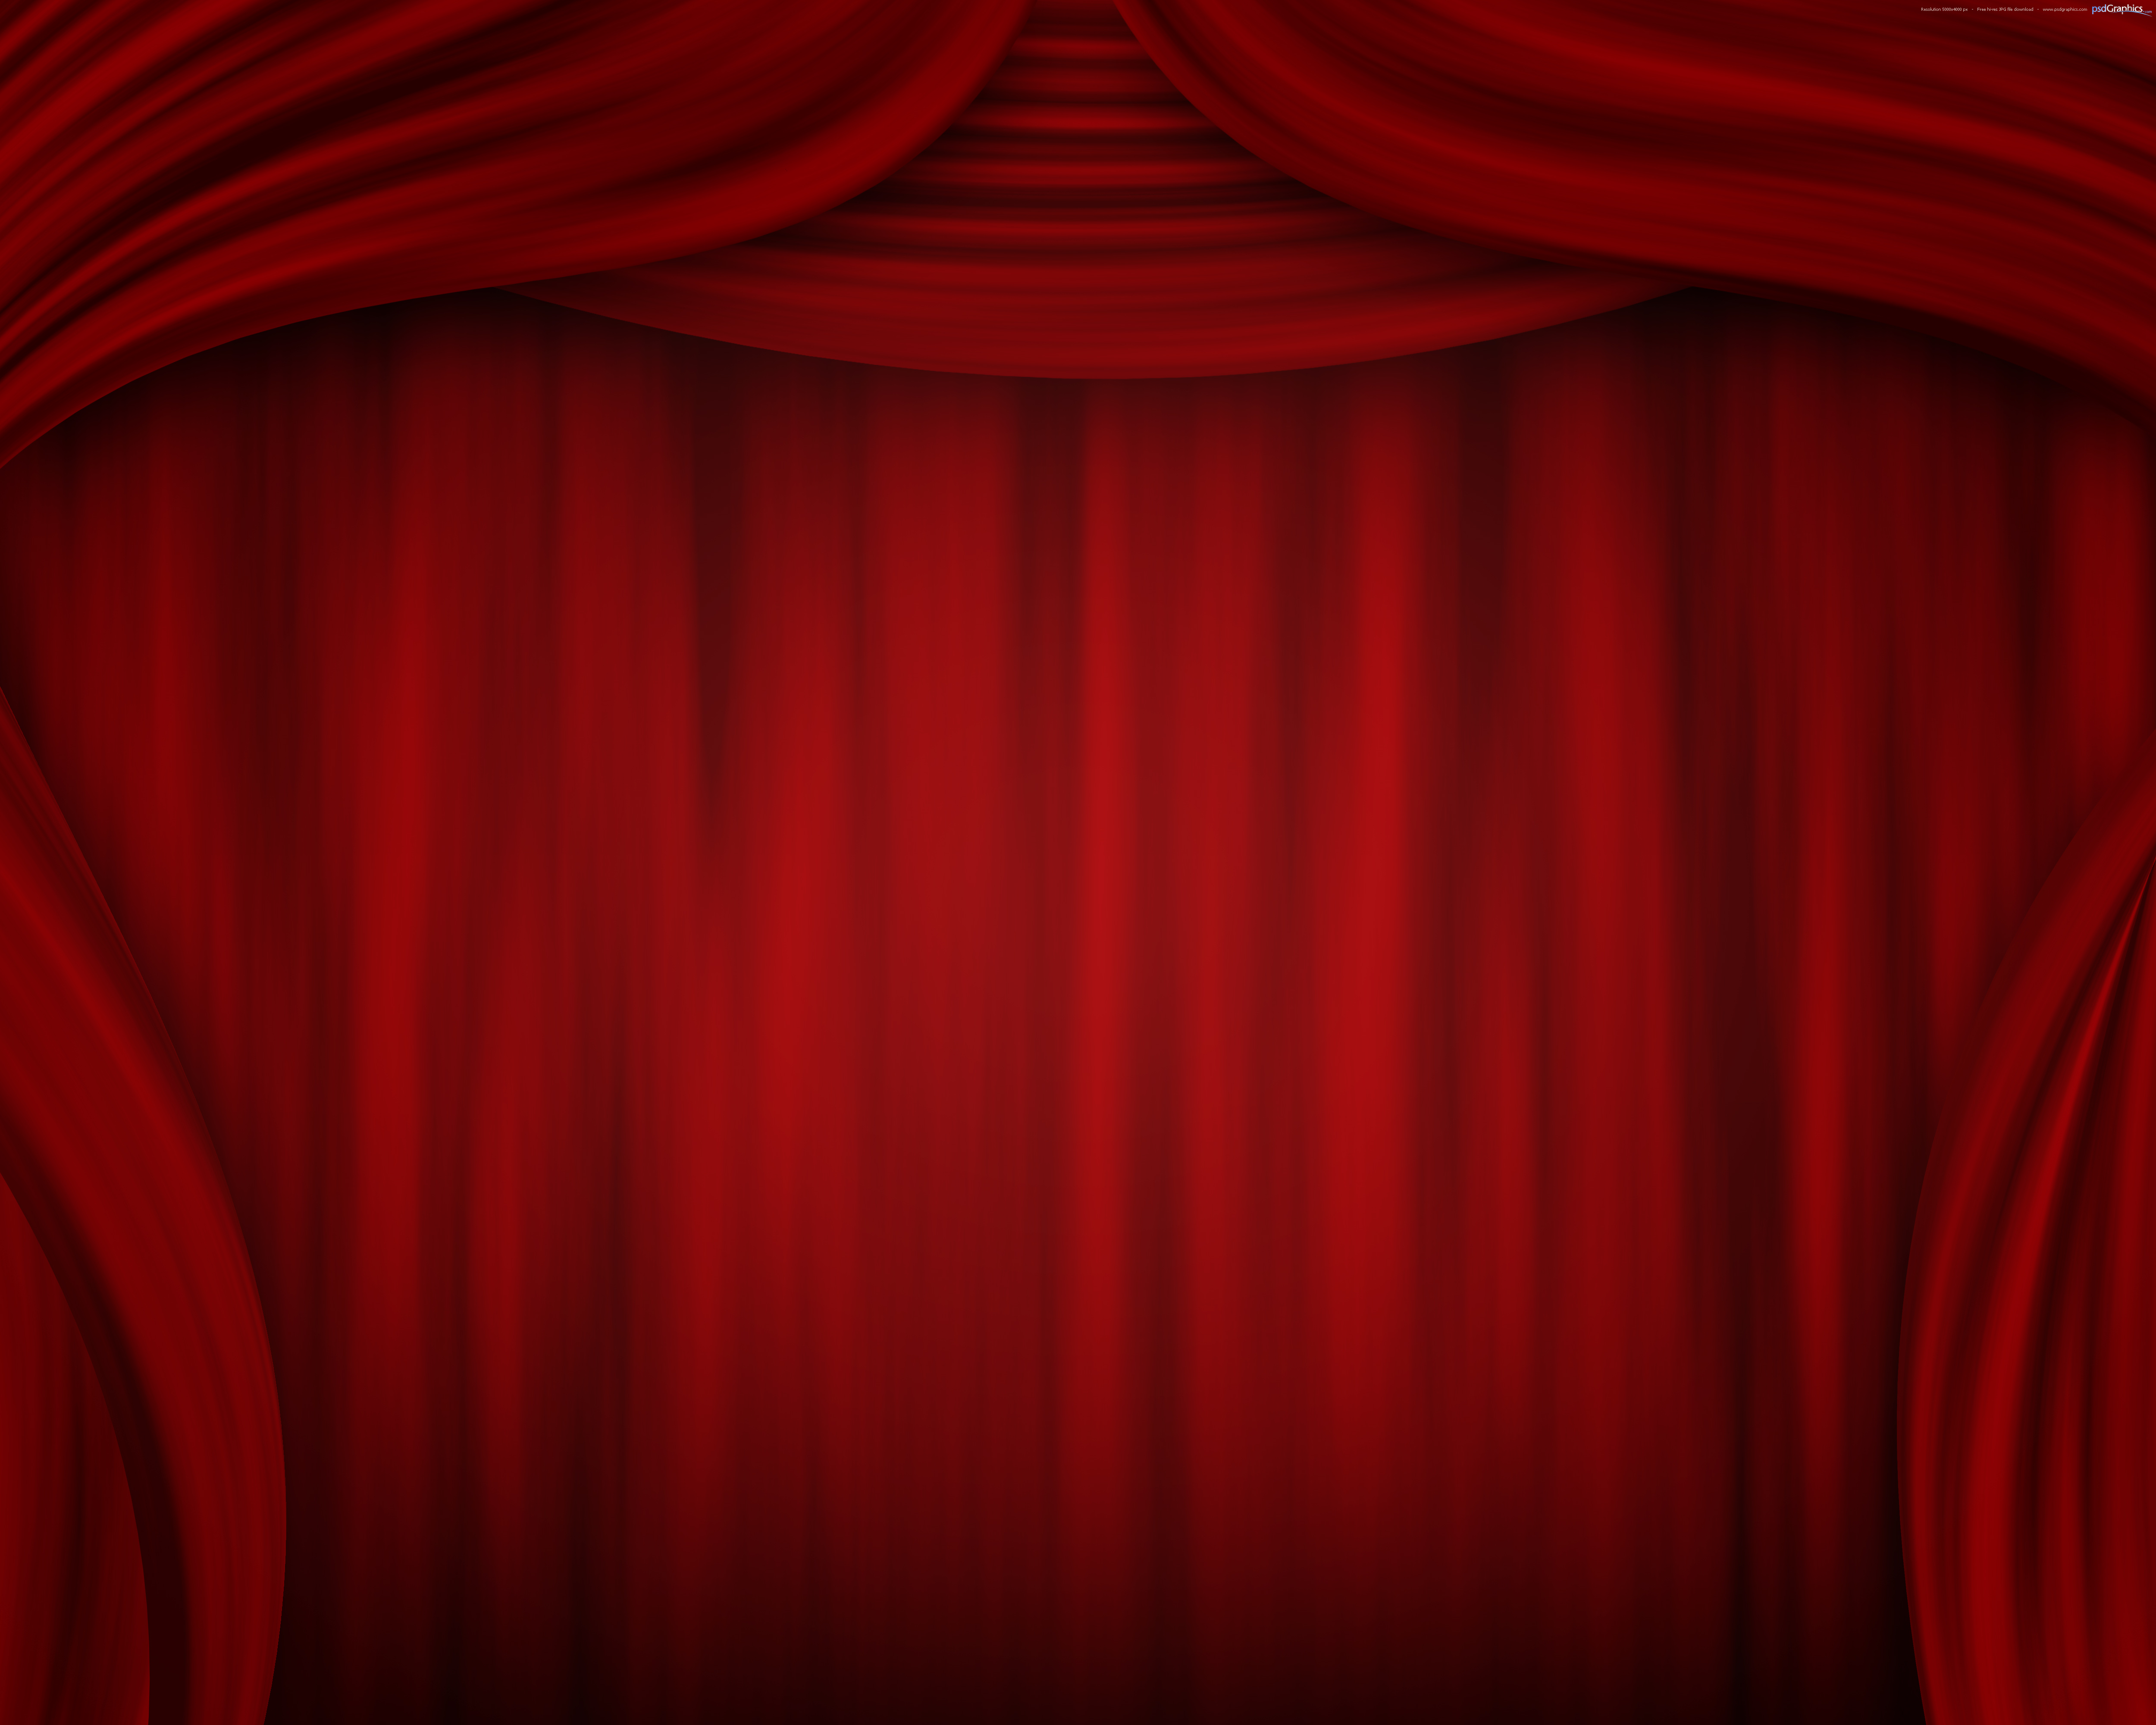 Curtain Purple Theater Images Stock Photos amp Vectors